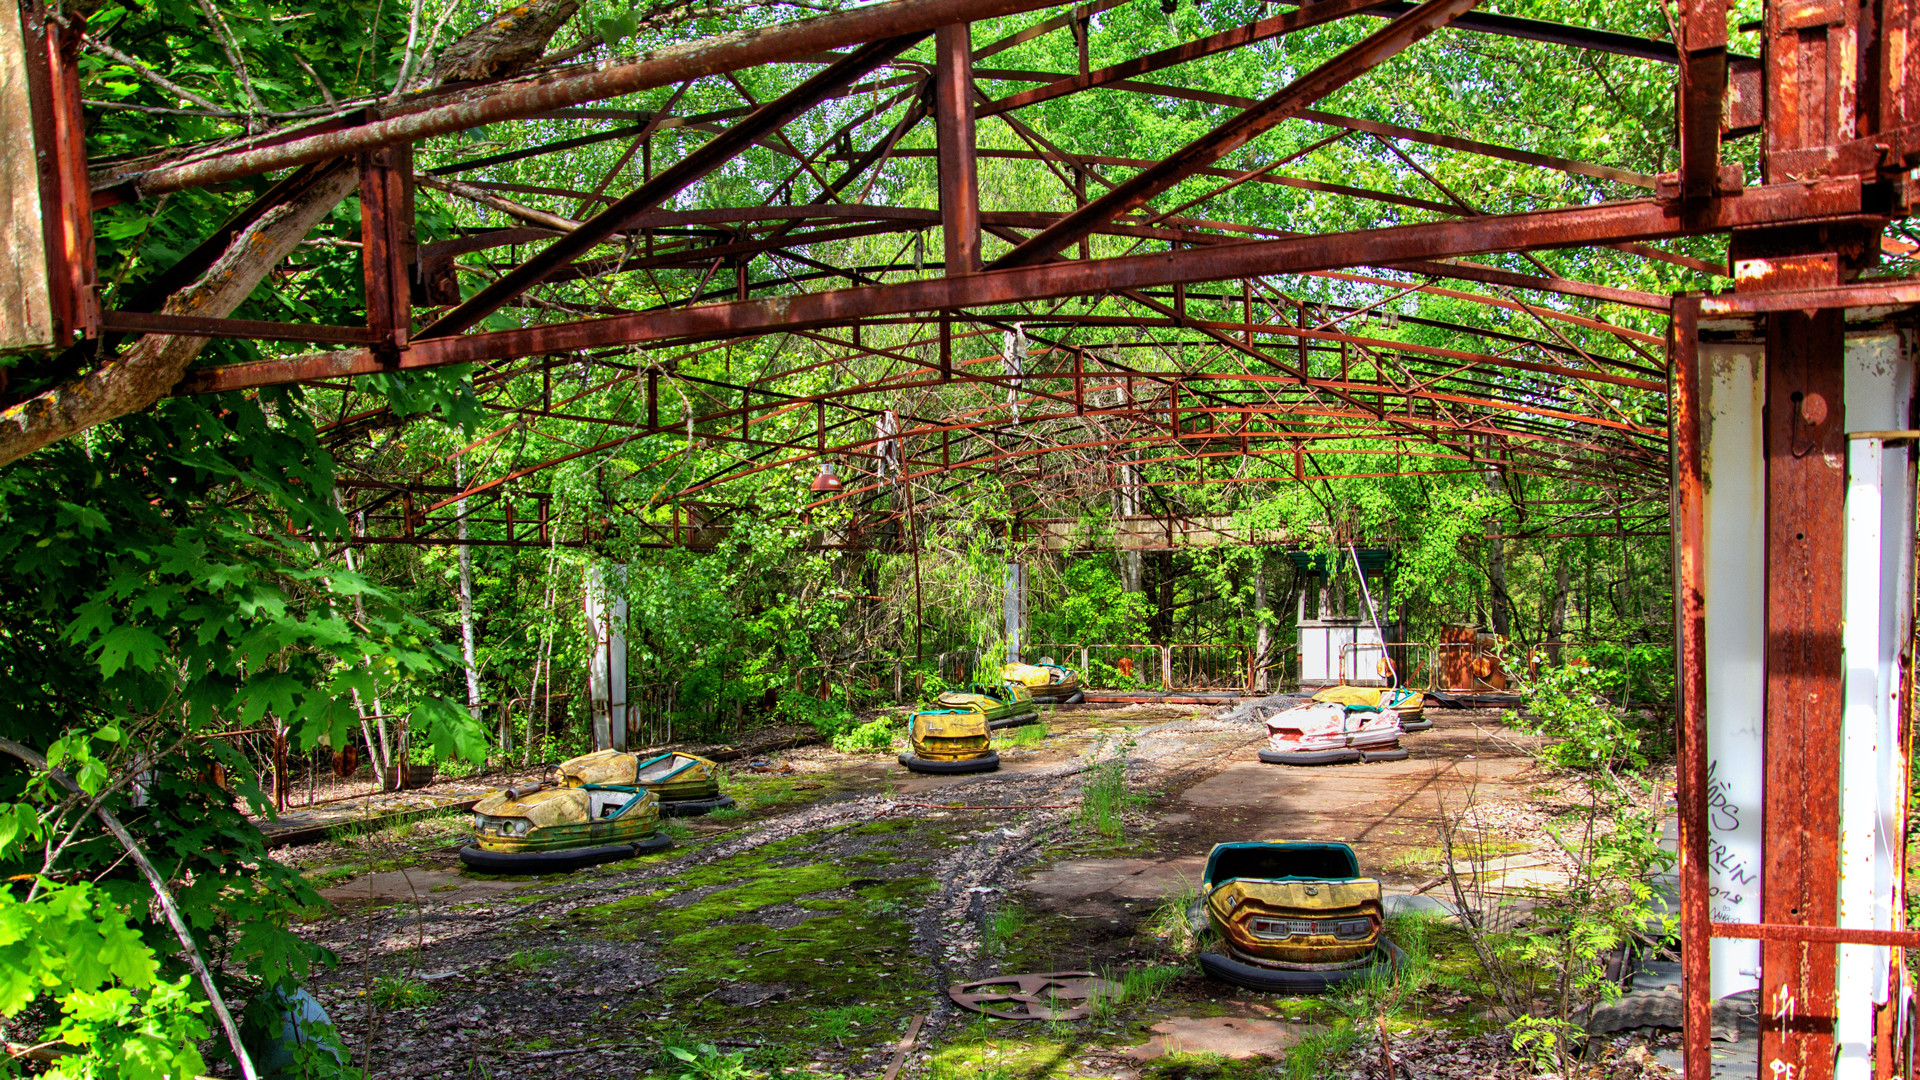 Abandoned amusement park in Pripyat, Ukraine